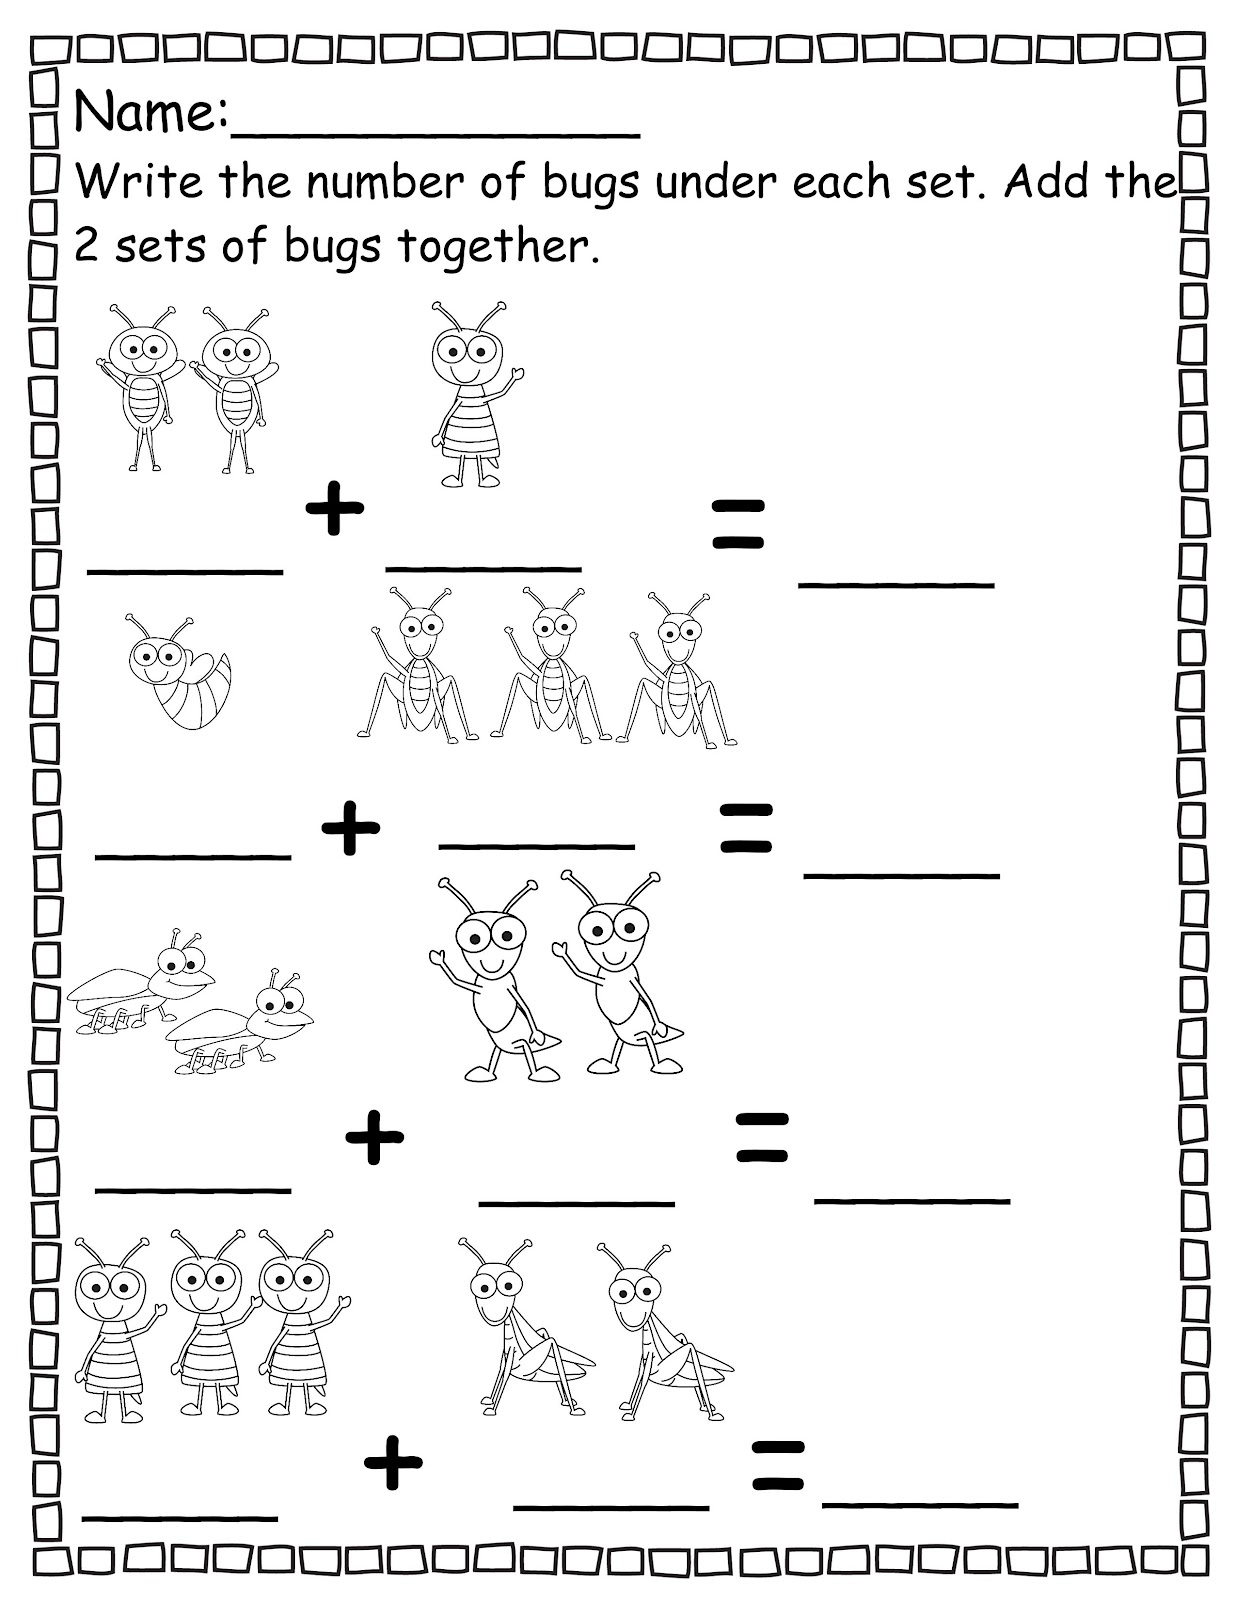 Printables Free Printable Worksheets For Pre K printable worksheets for pre k abitlikethis the crazy classroom free printables